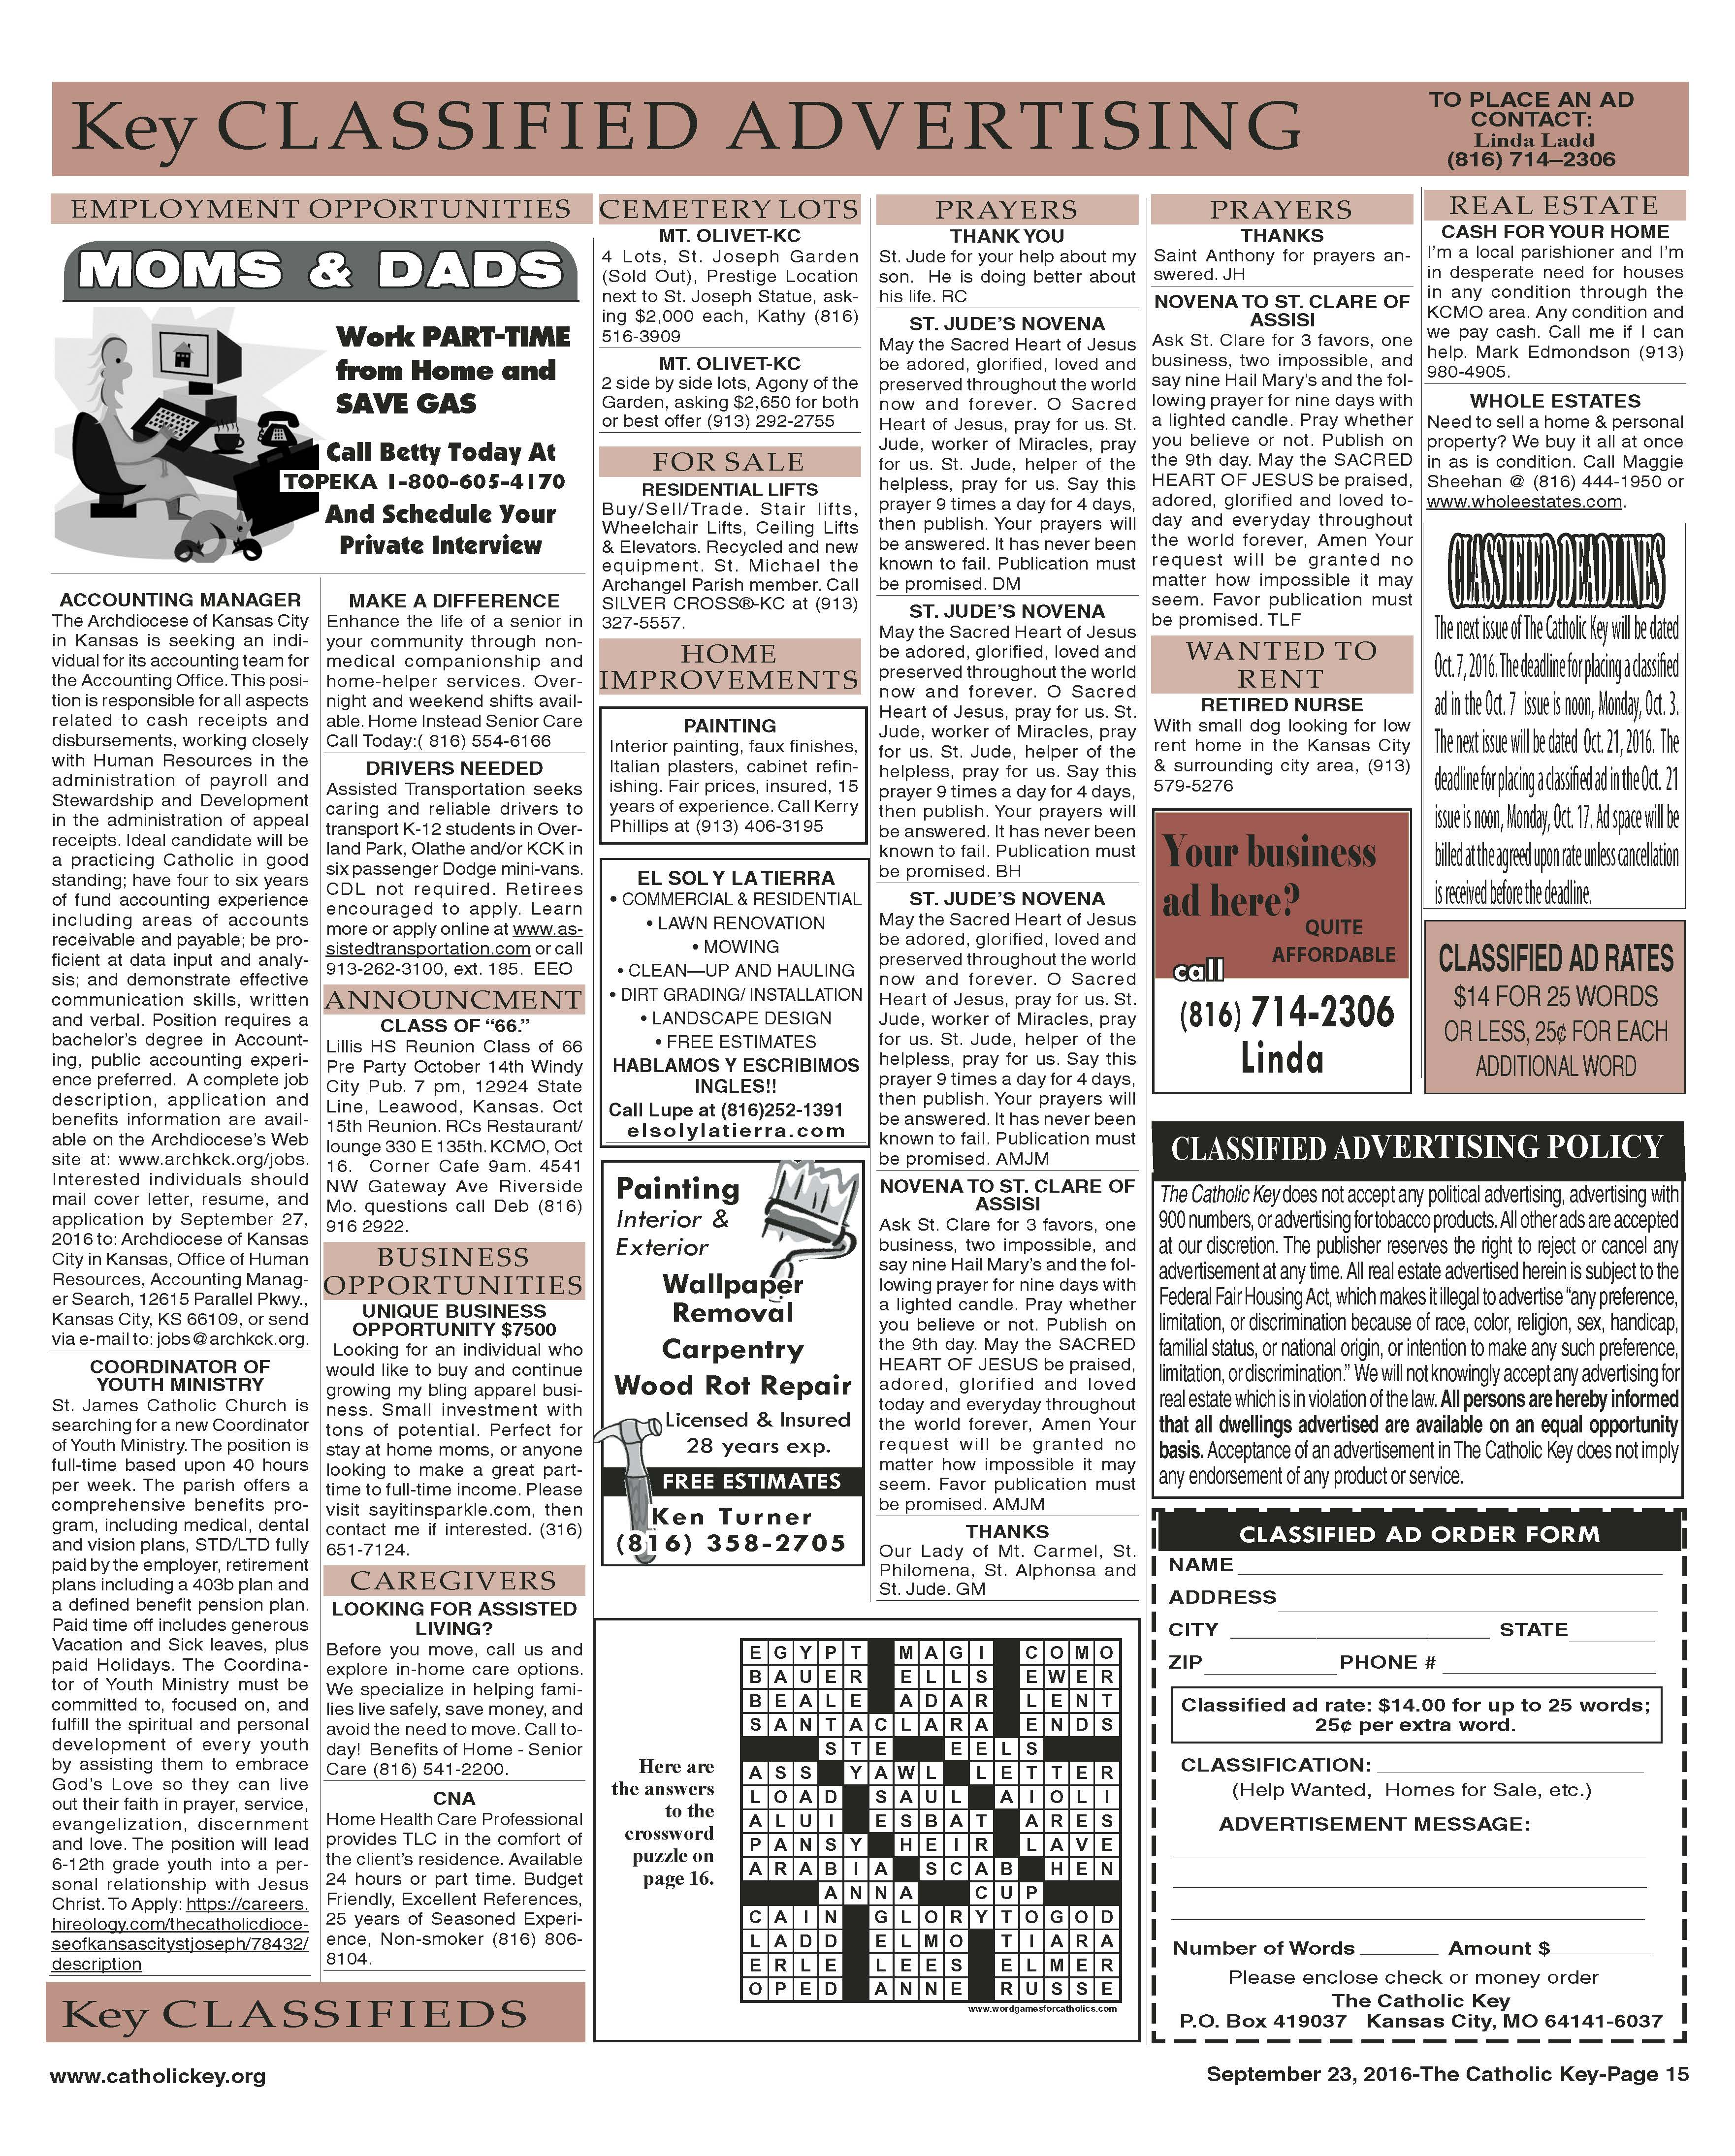 Key Classifieds - September 23, 2016